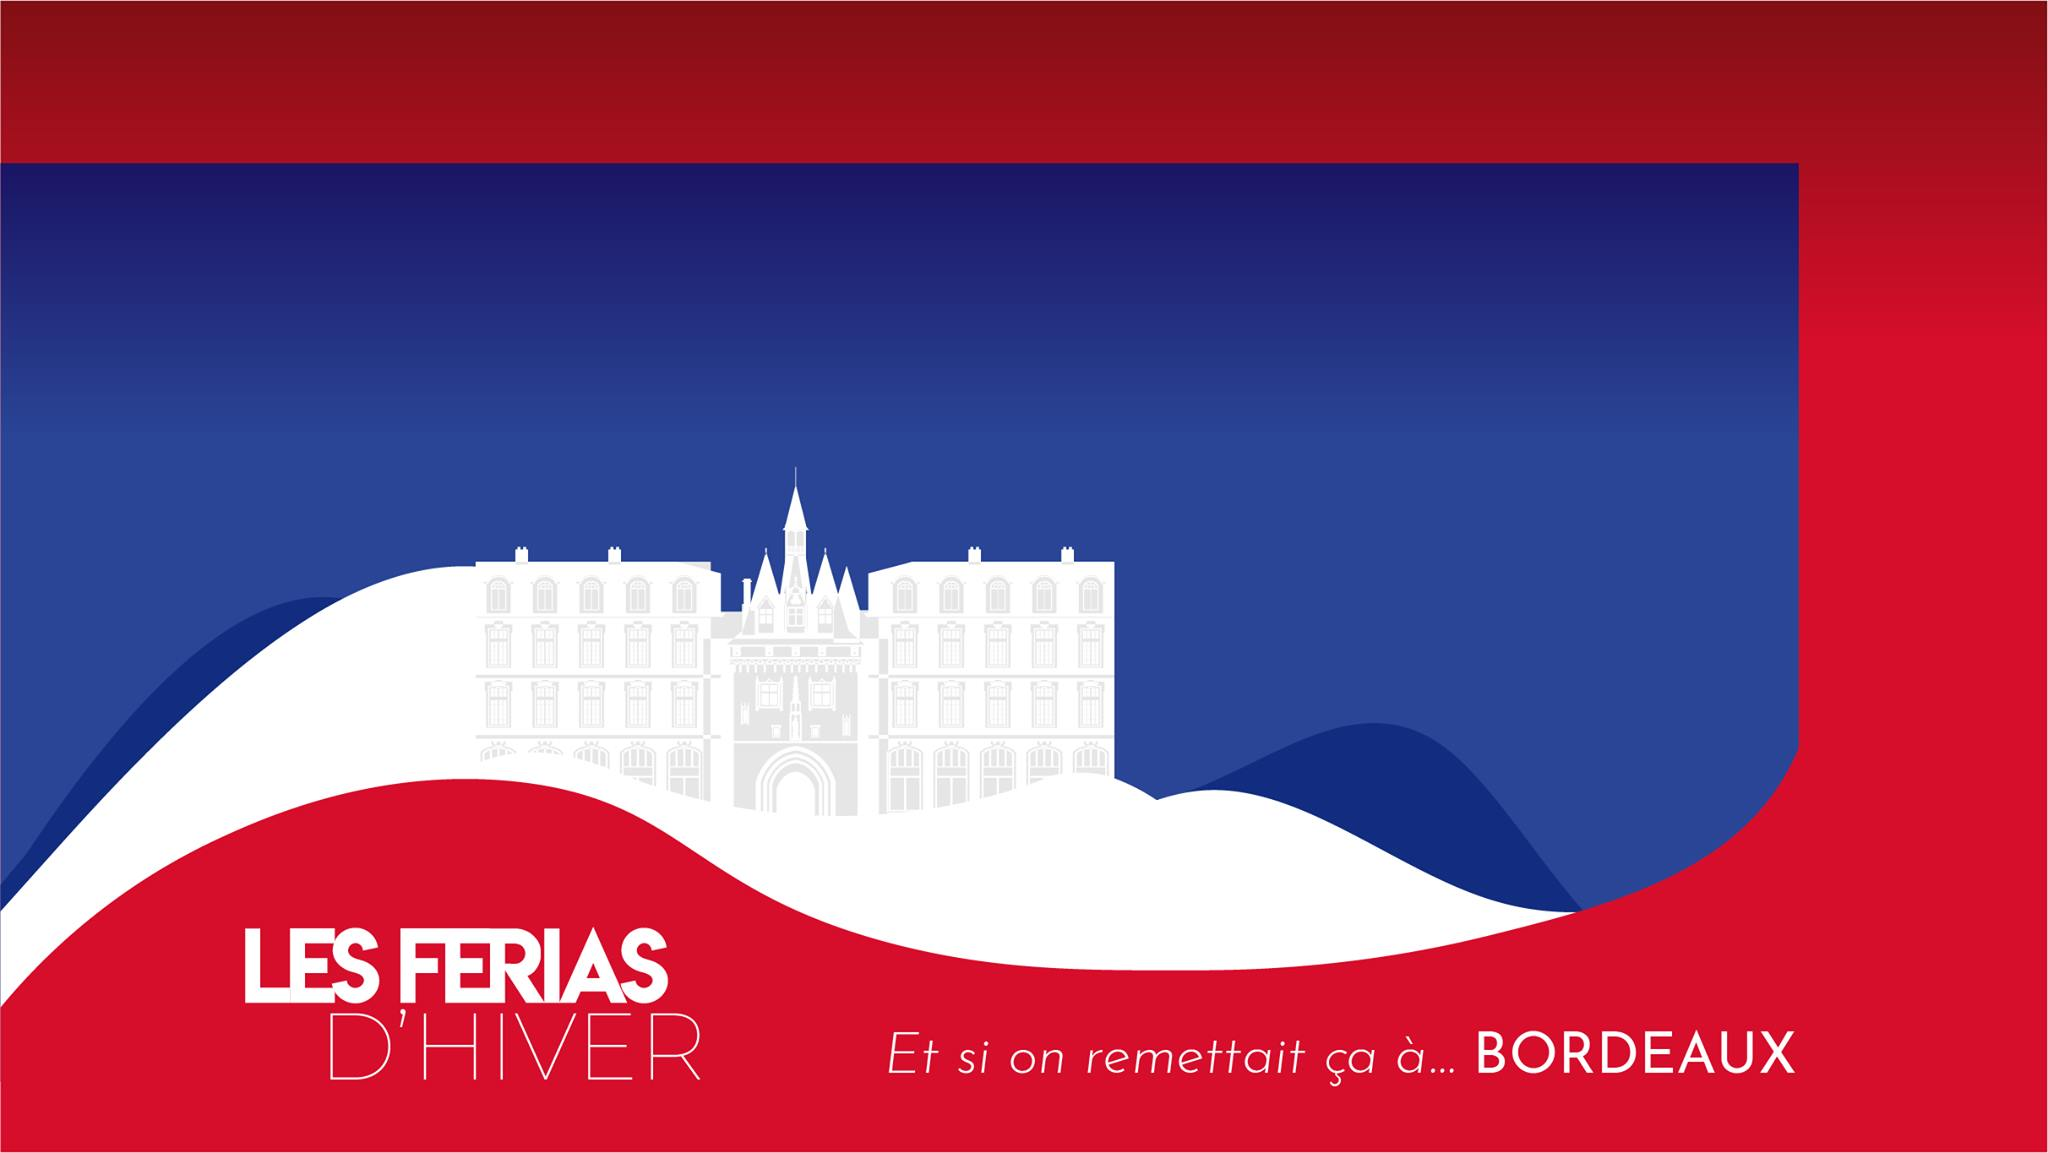 https://the-place-to-be.fr/wp-content/uploads/2019/12/férias-hiver-bordeaux-2020.jpg